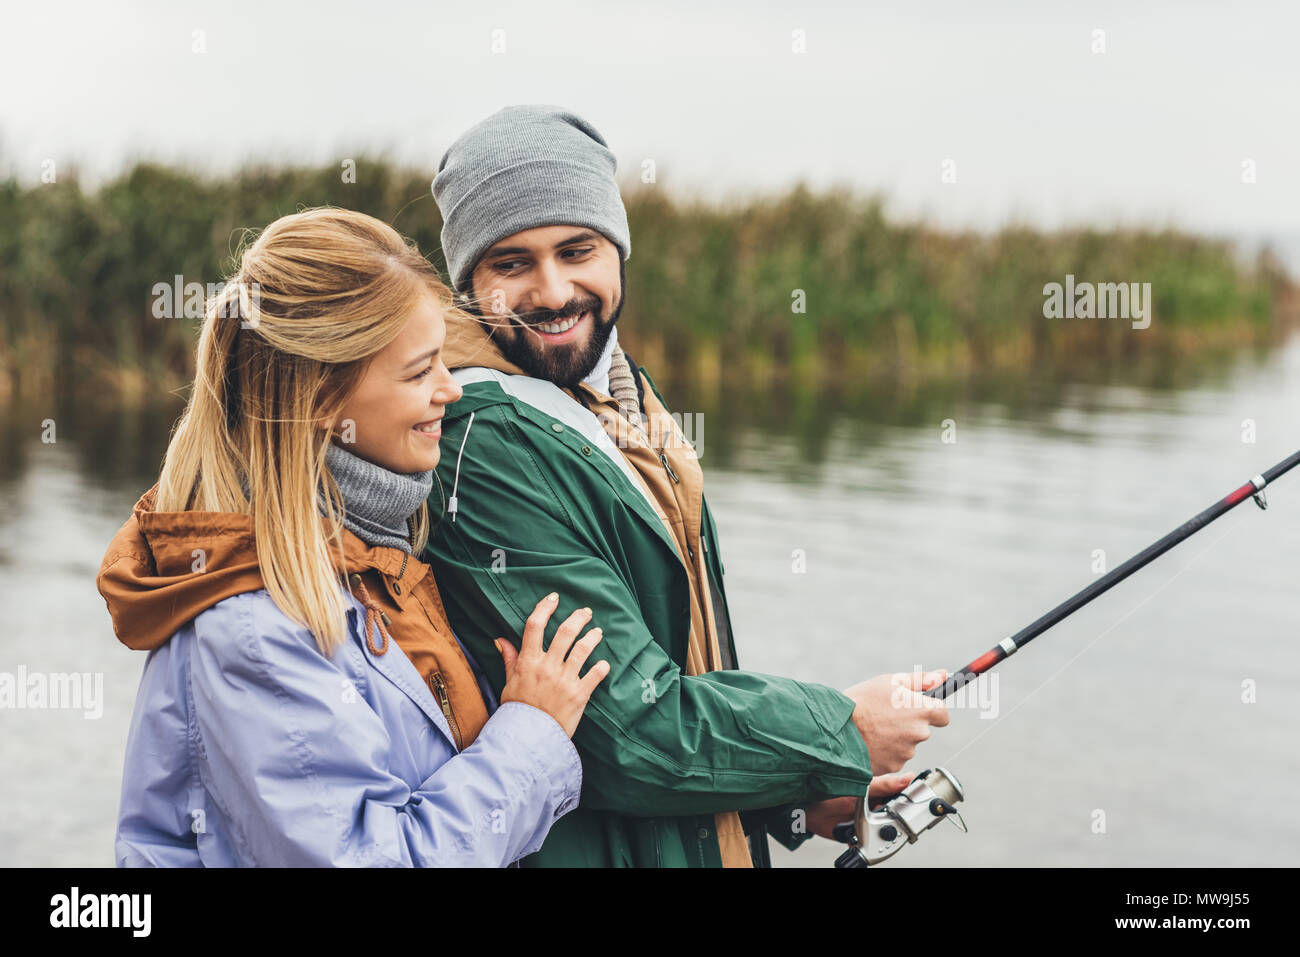 happy young couple embracing while fishing together - Stock Image